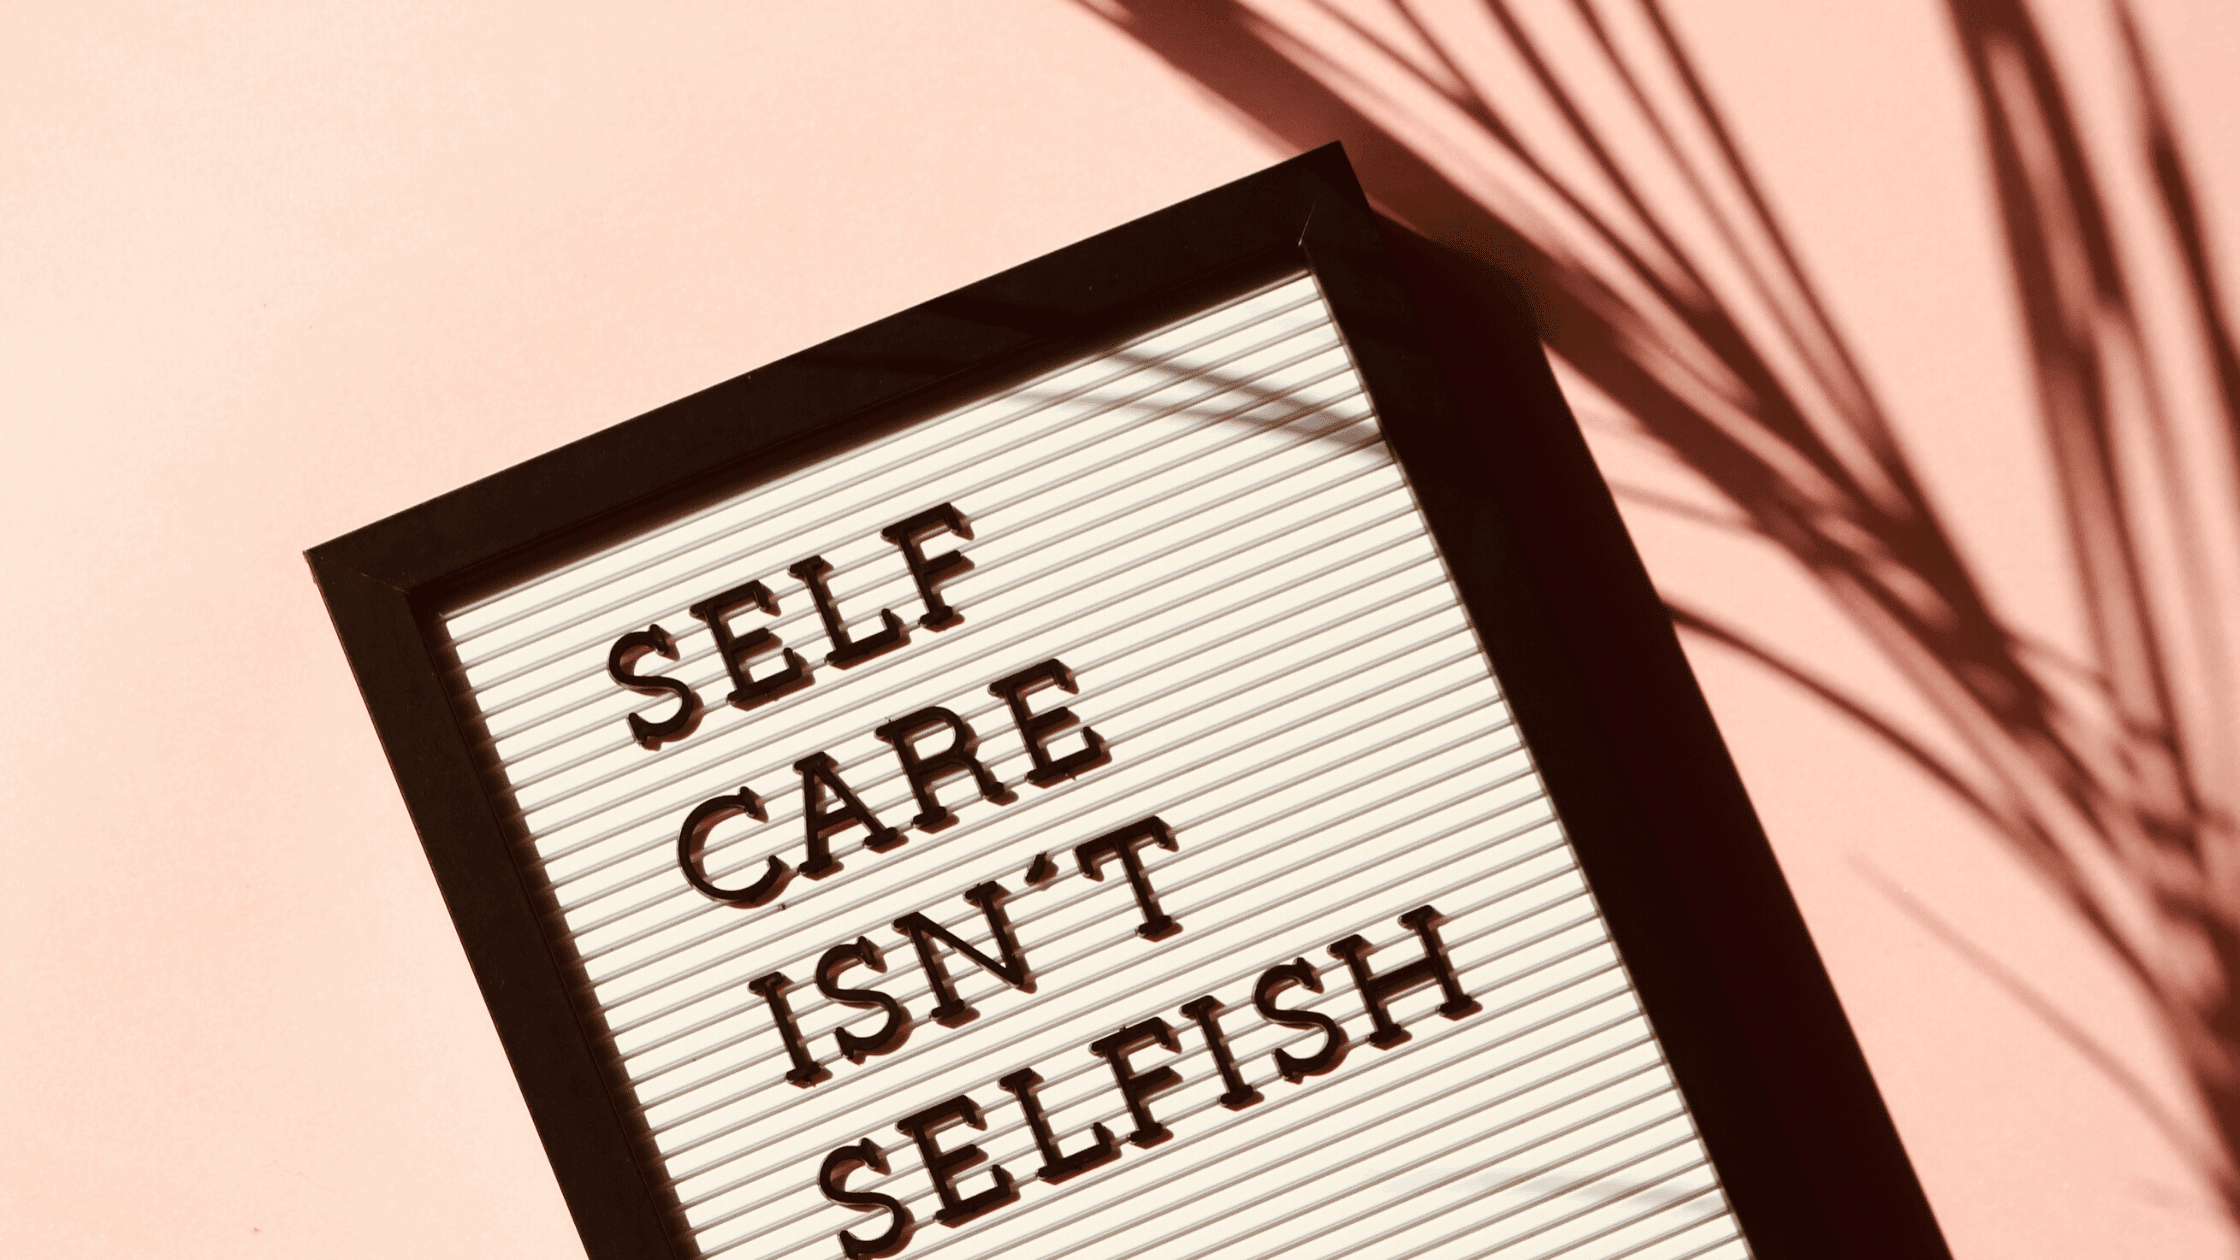 self-care isnt selfish